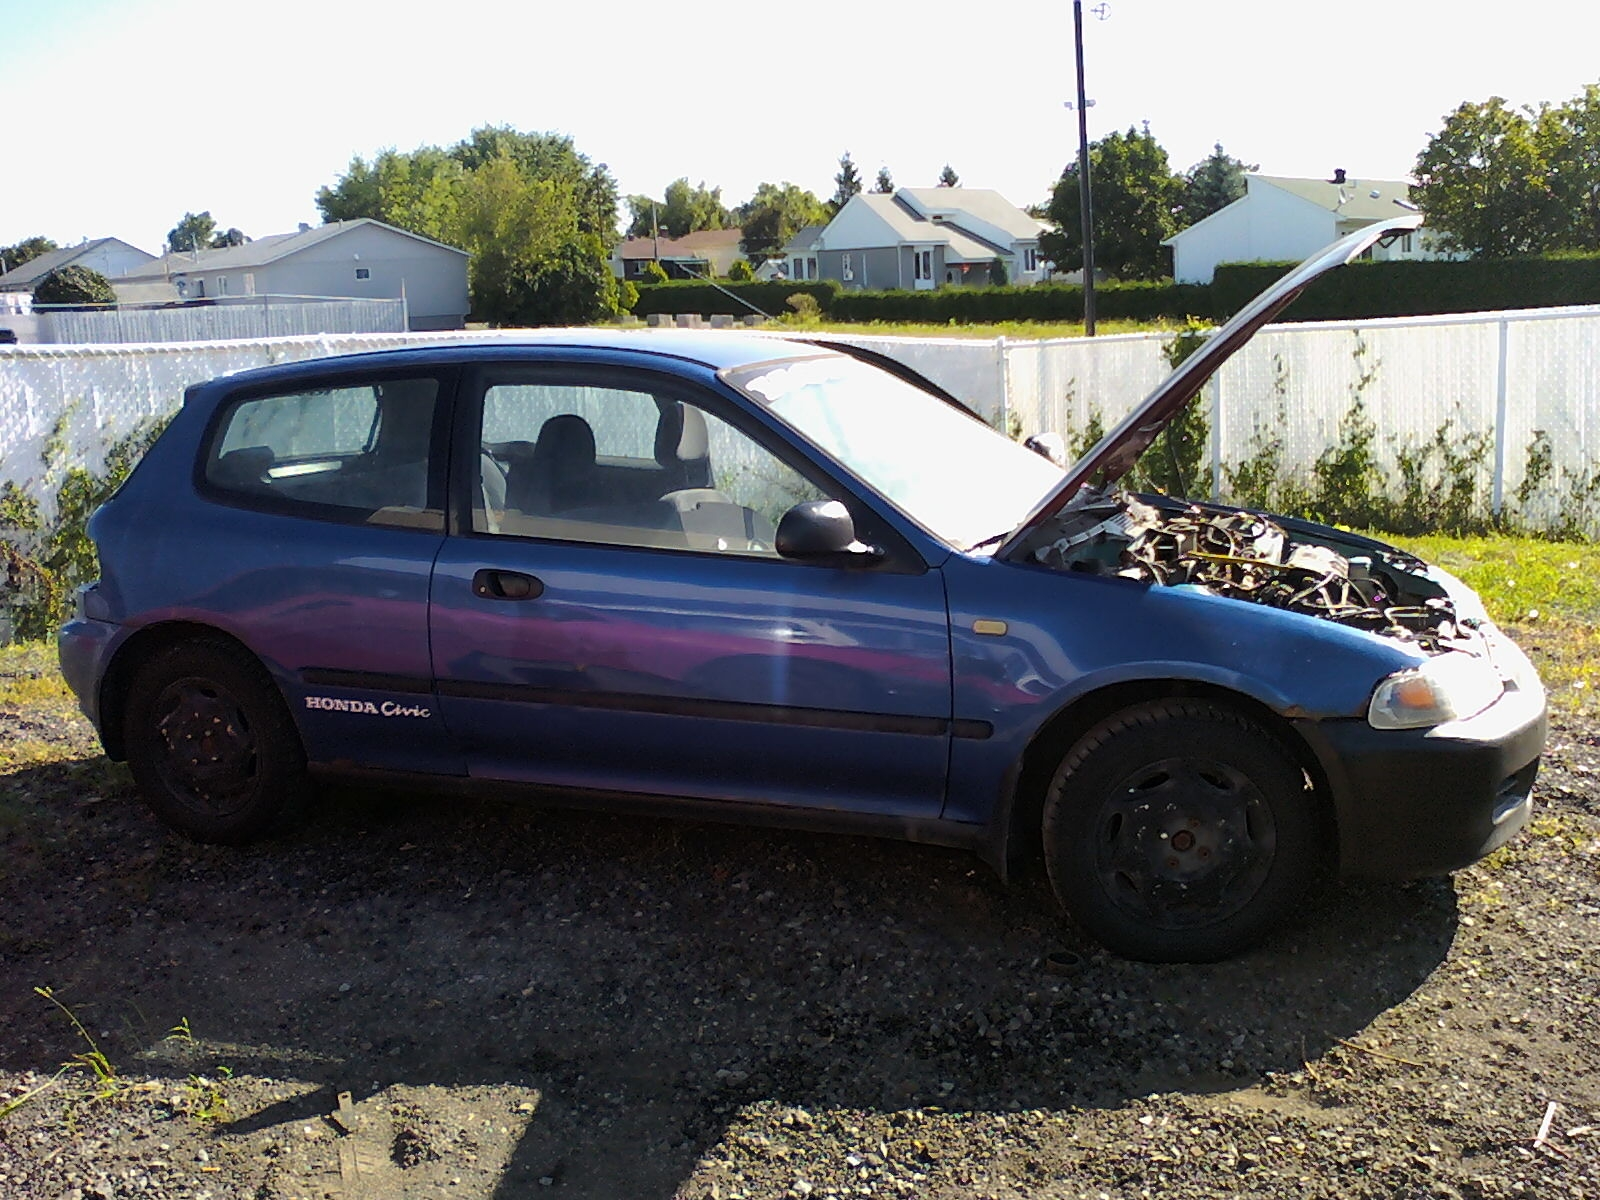 1993 honda civic hatchback - photo #32